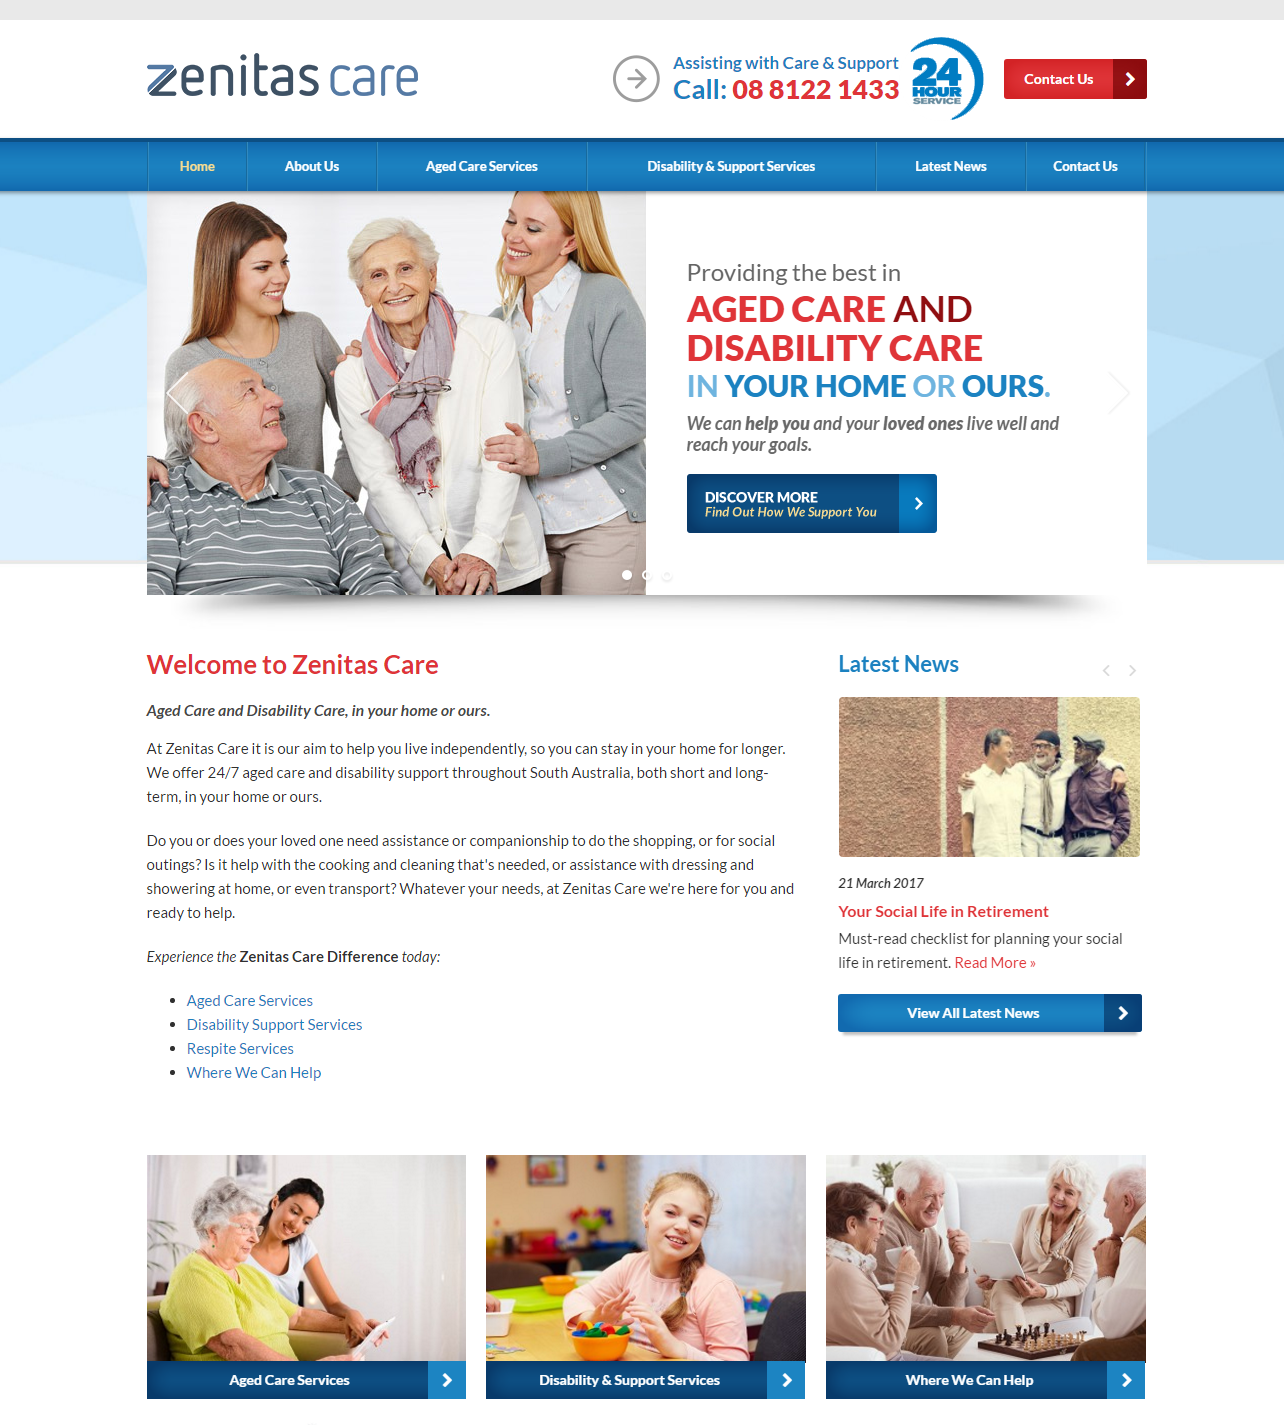 Check out the NEW Zenitas Care Website Designed & Constructed by Honeyweb Online Marketing Solutions